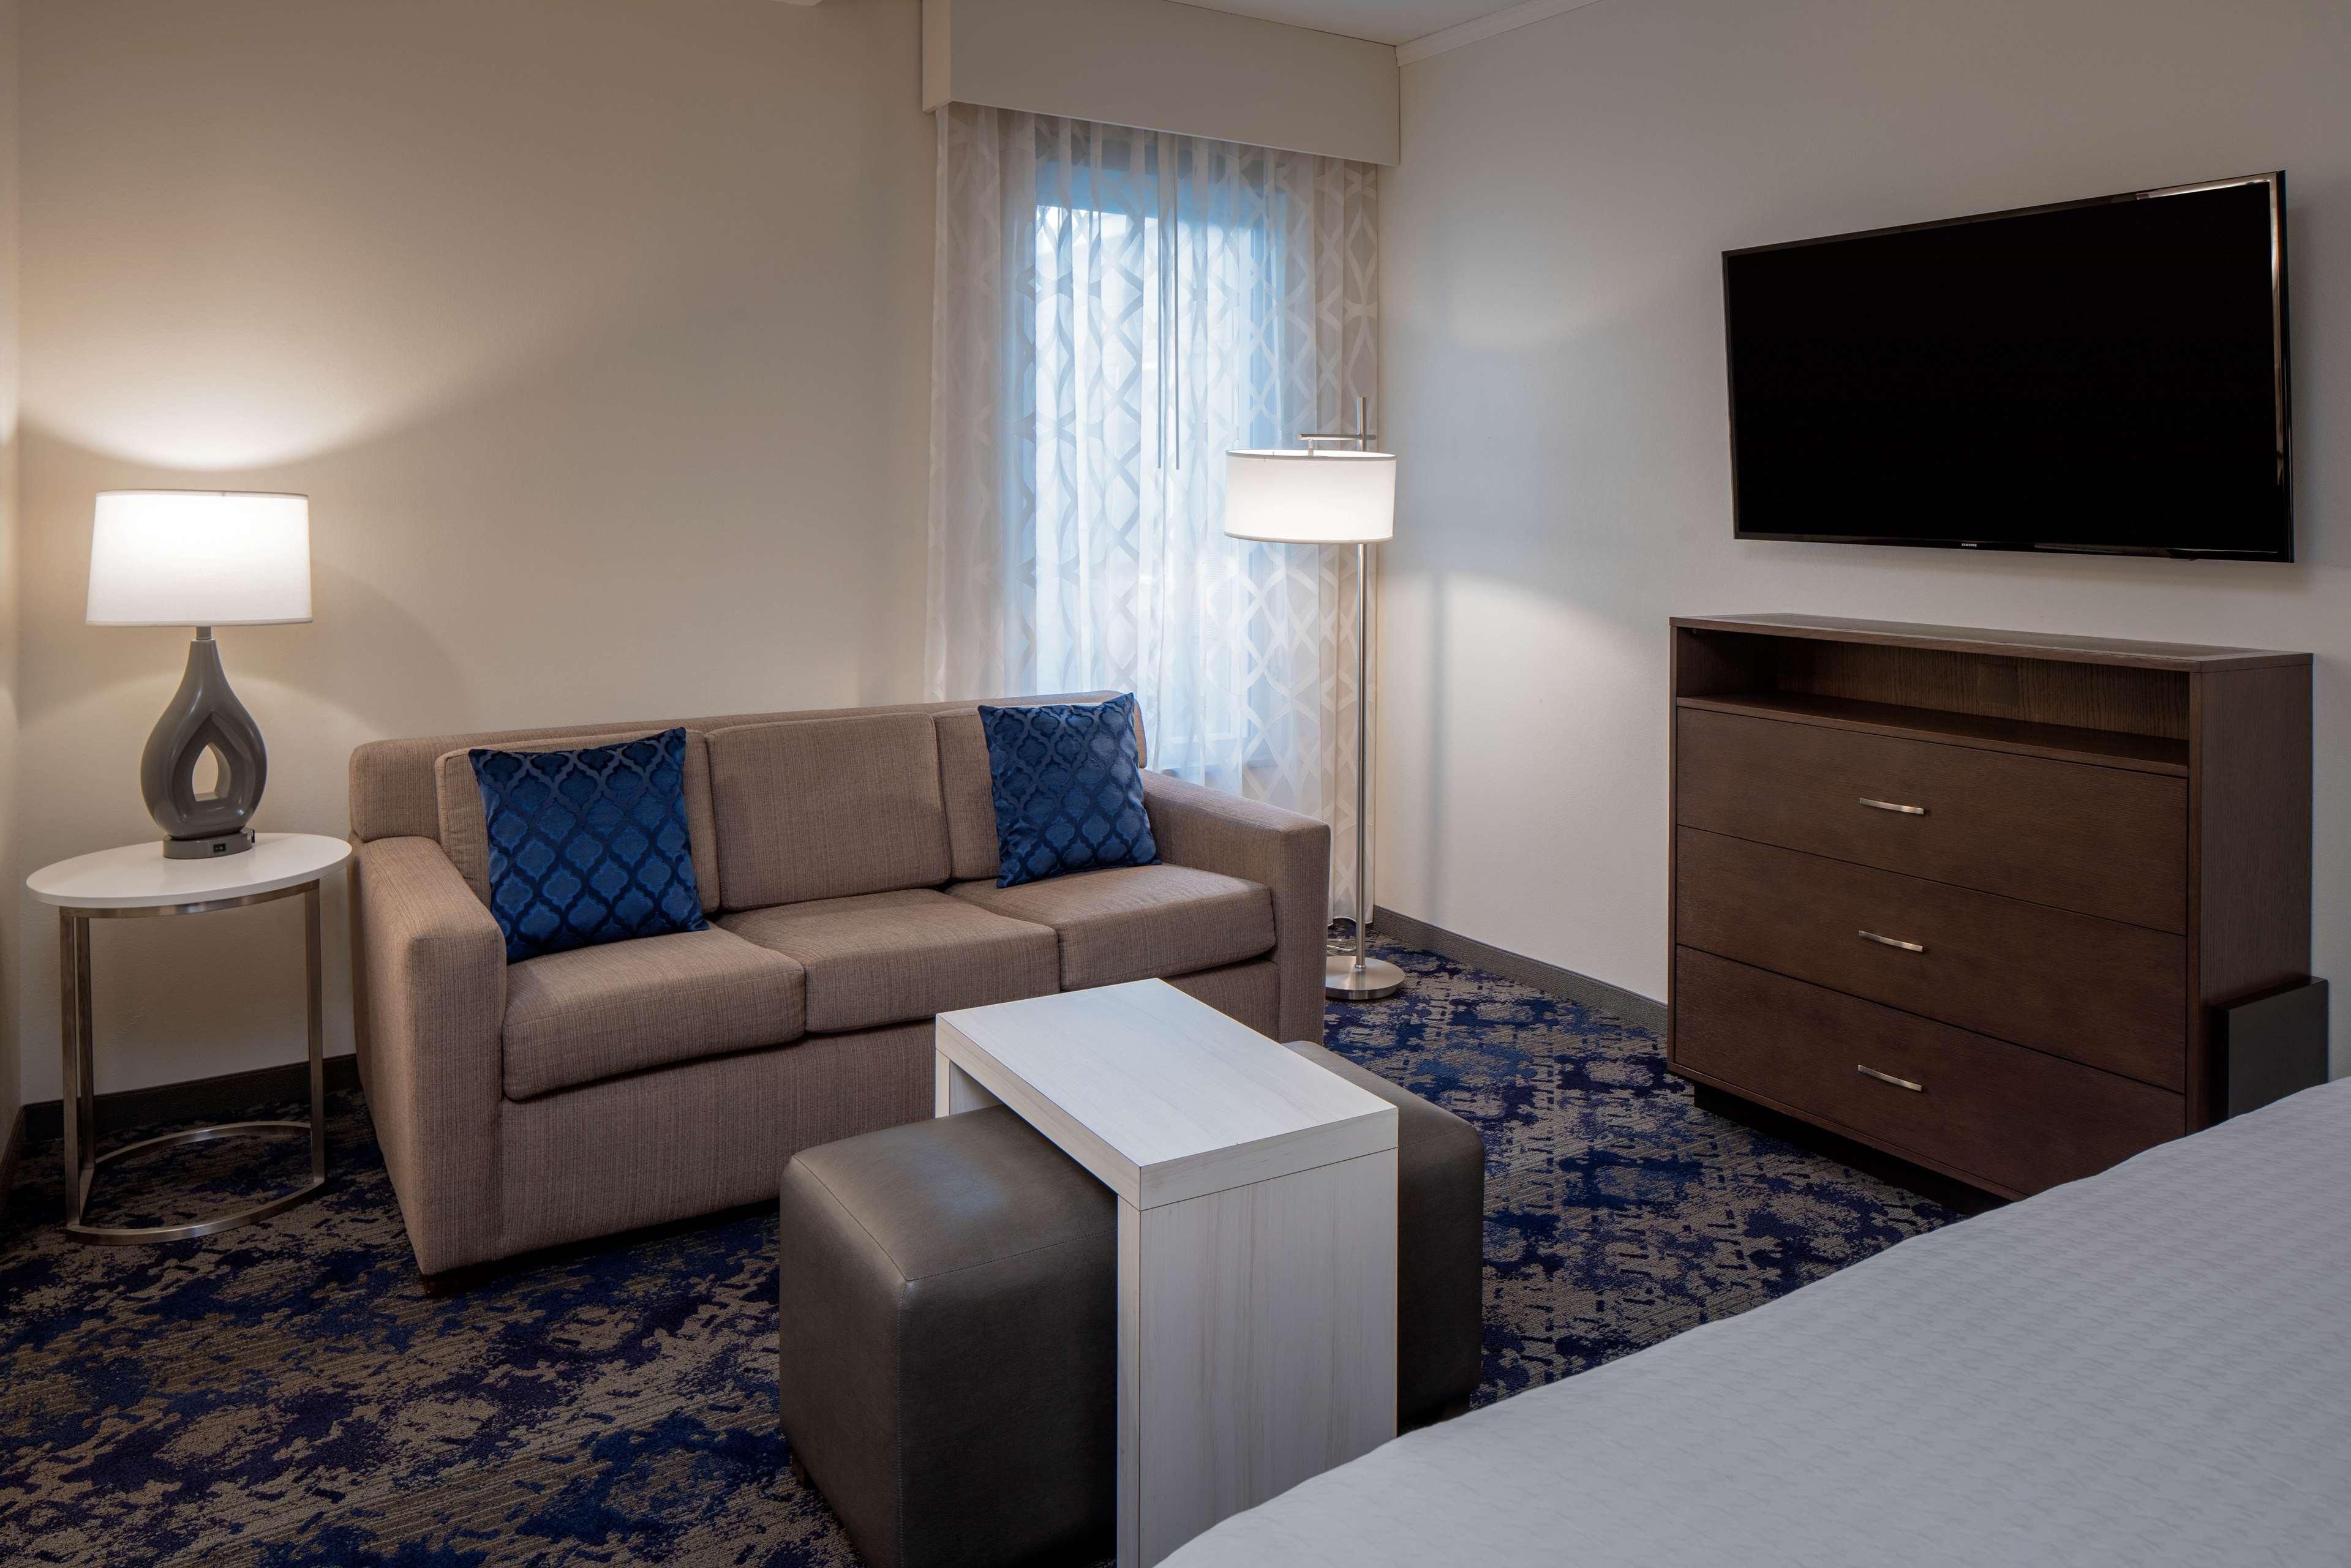 Homewood Suites by Hilton New Orleans French Quarter image 29